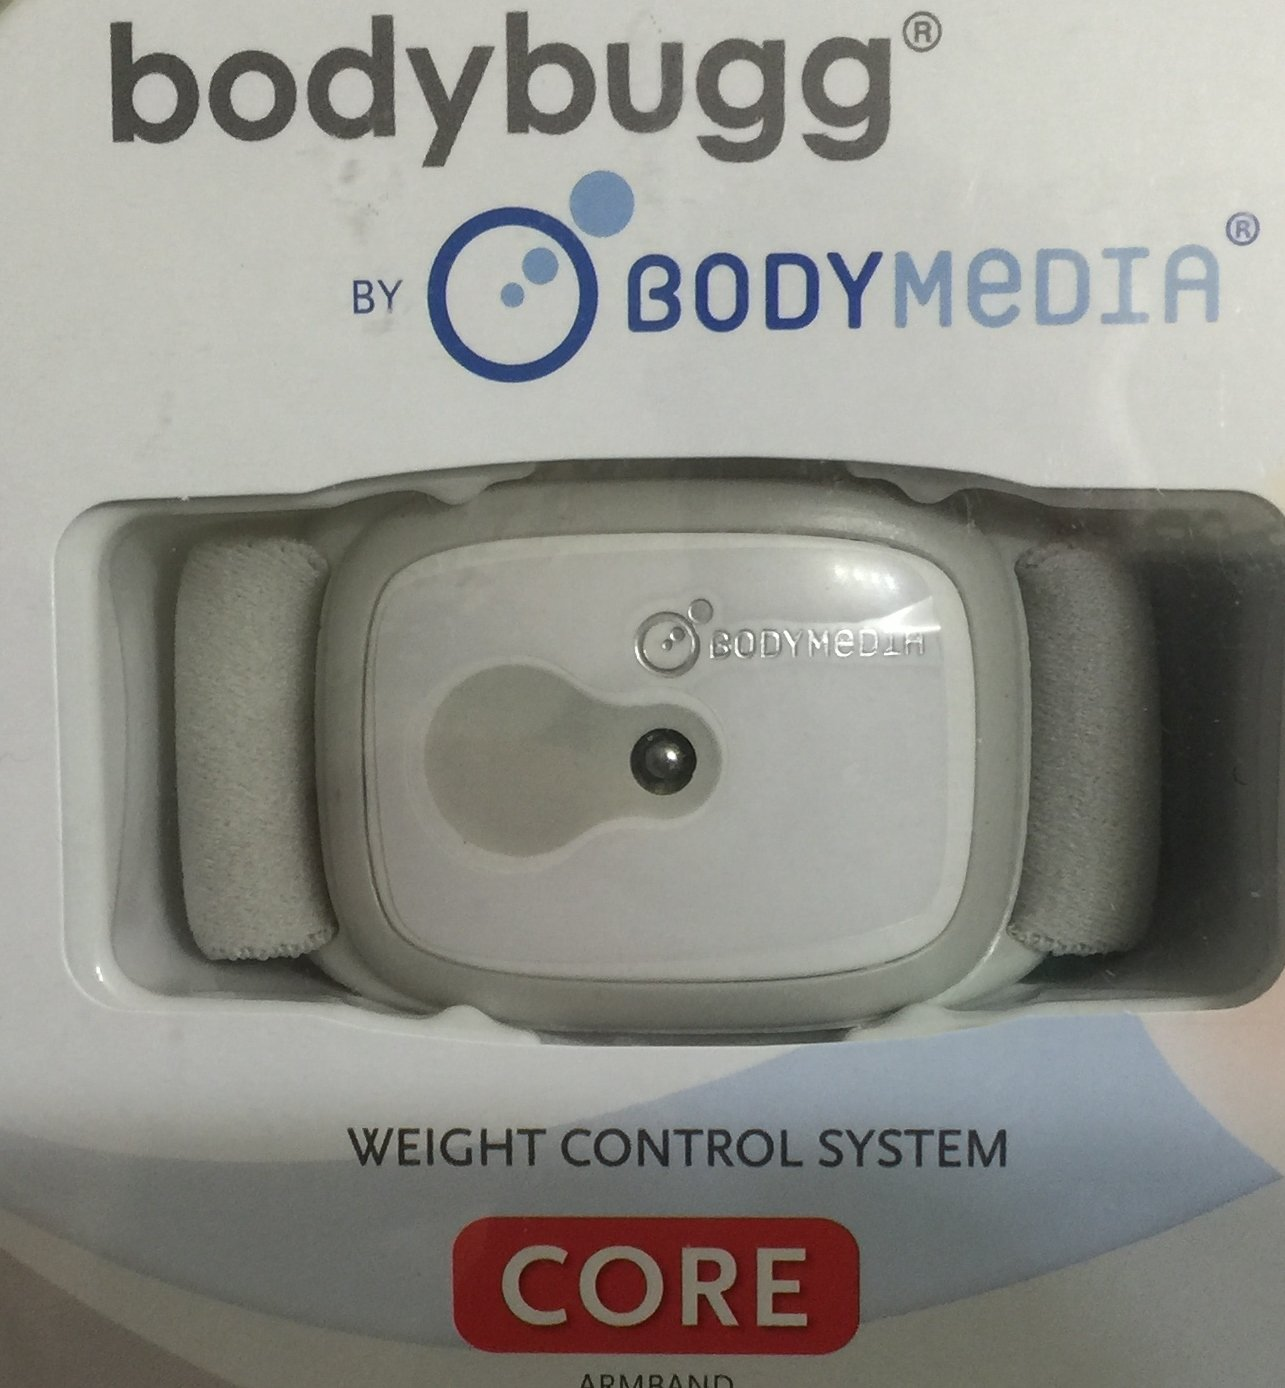 BODYBUGG ARMBAND WINDOWS 7 X64 DRIVER DOWNLOAD